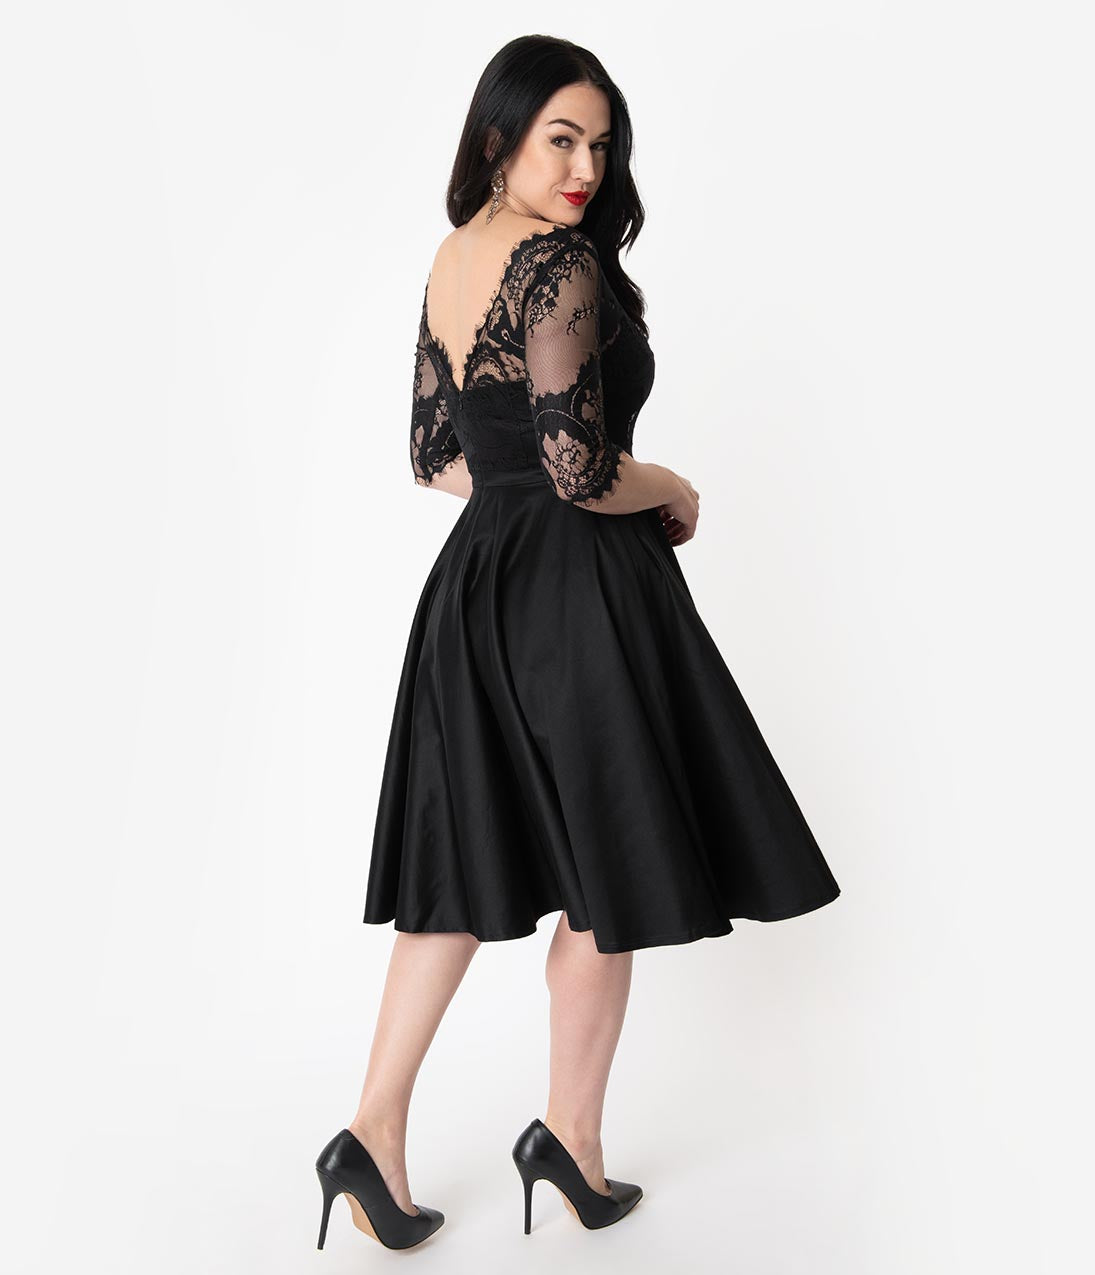 1950s Dresses, 50s Dresses | 1950s Style Dresses Vintage Diva 1950S Style Black Lace Sleeved Leonora Swing Dress $132.00 AT vintagedancer.com